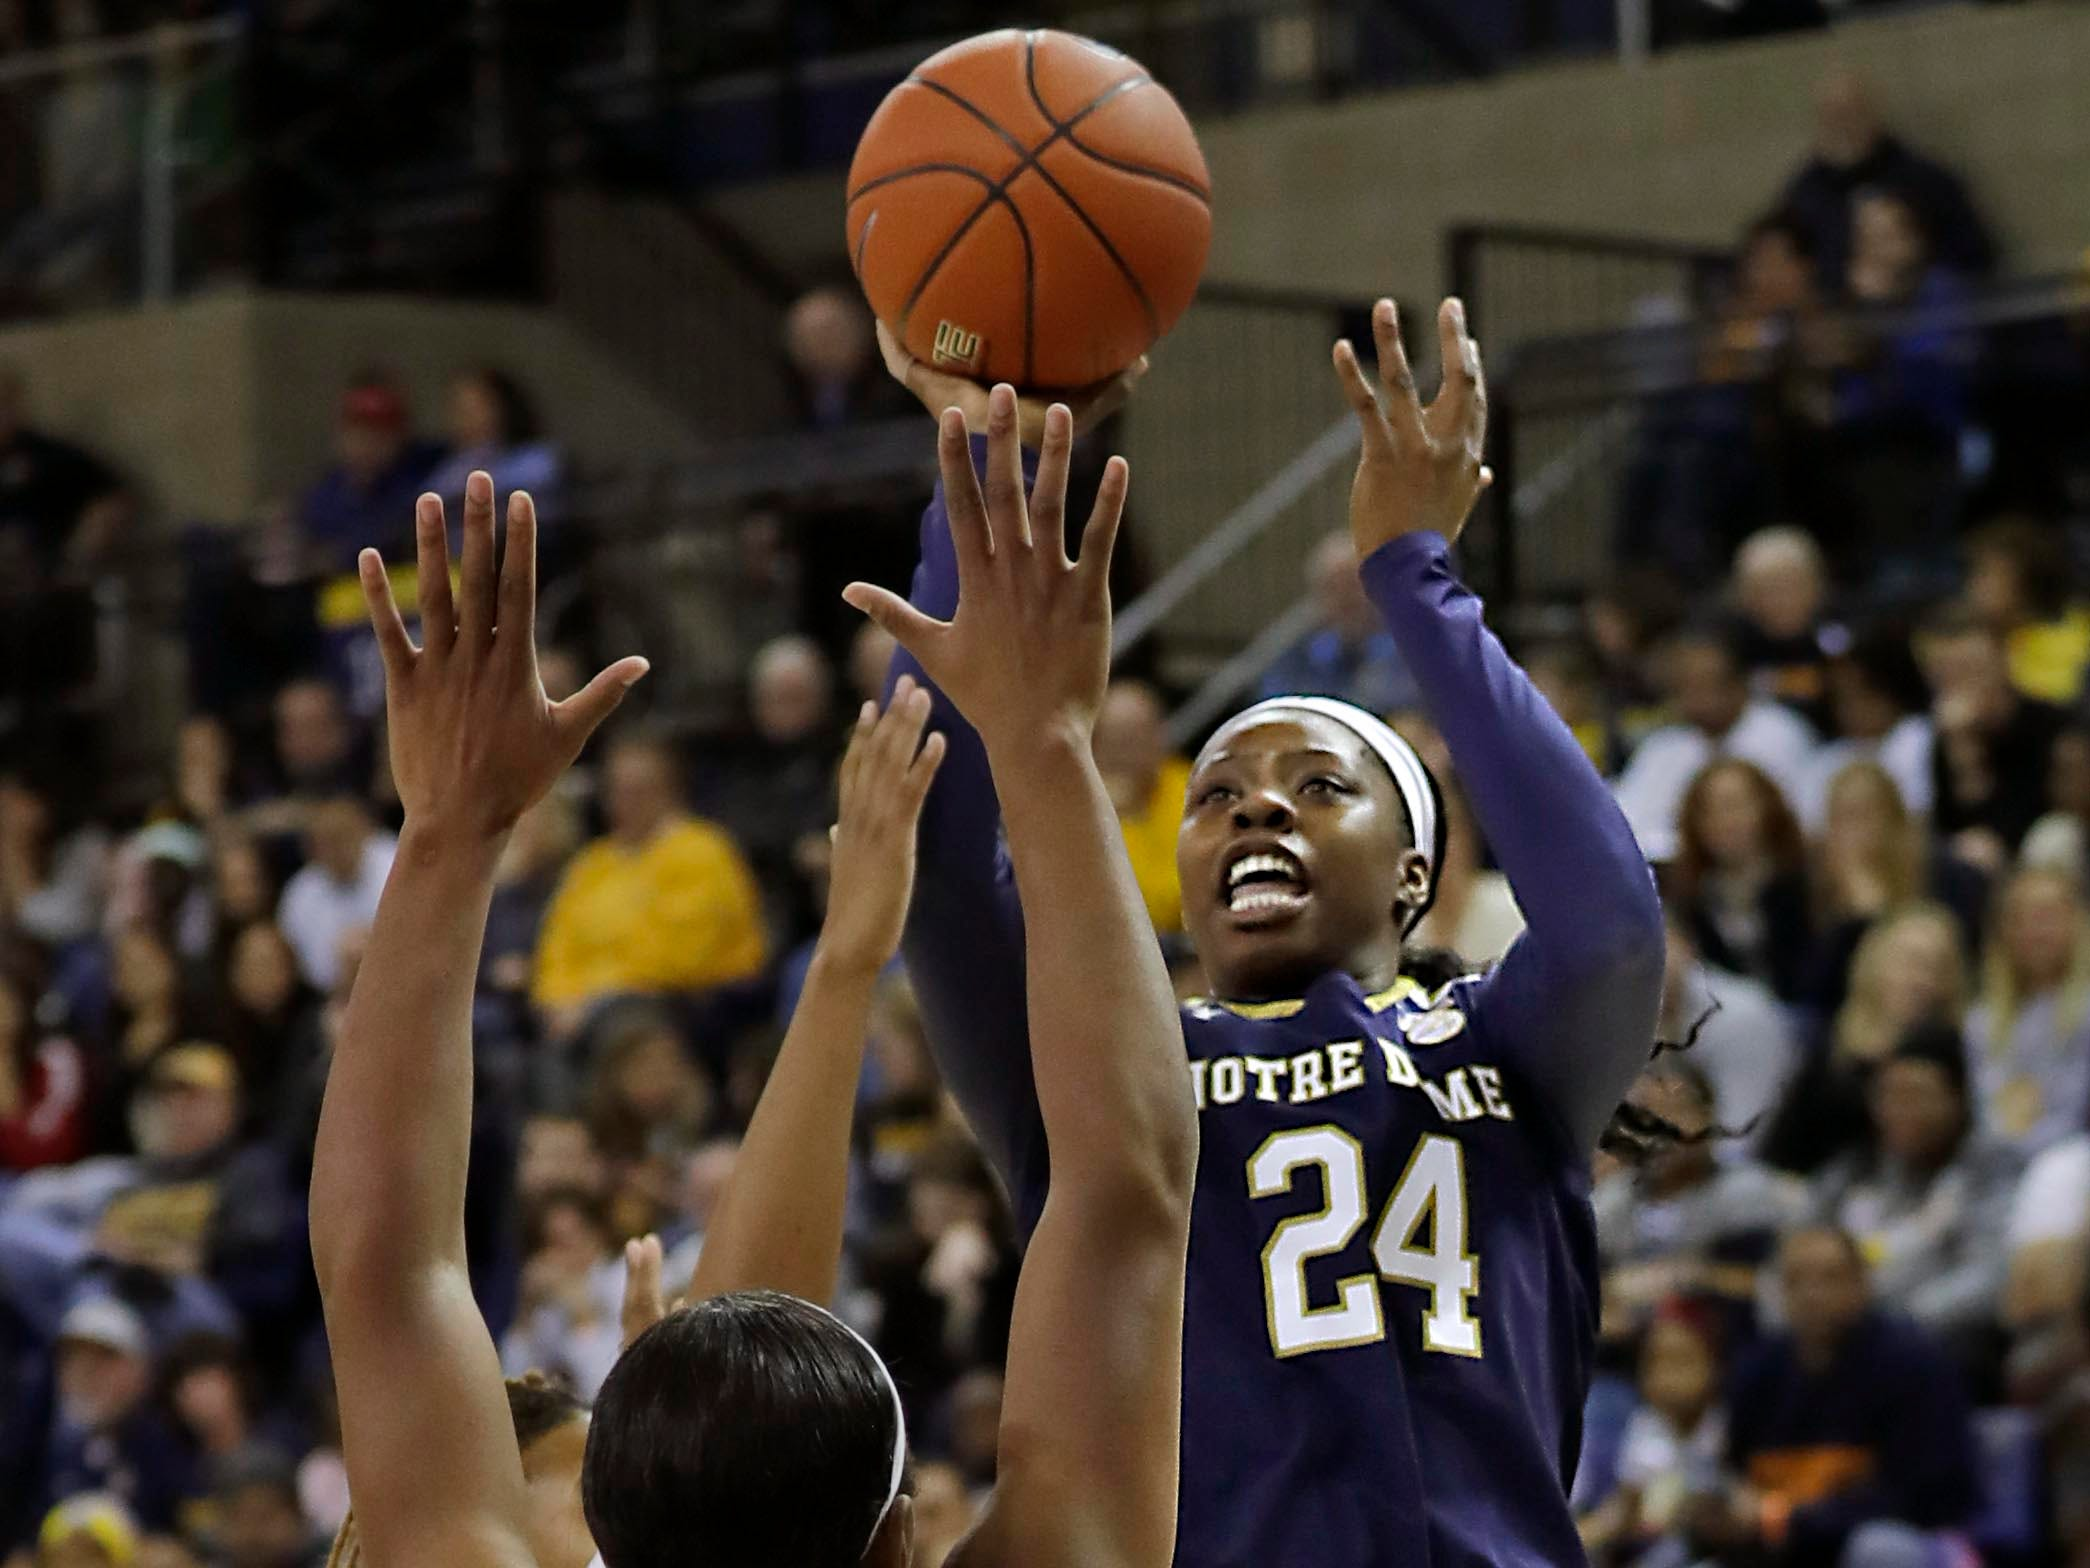 Notre Dame Fighting Irish guard Arike Ogunbowale  hits a jumper over Marquette Golden Eagles forward Erika Davenport.